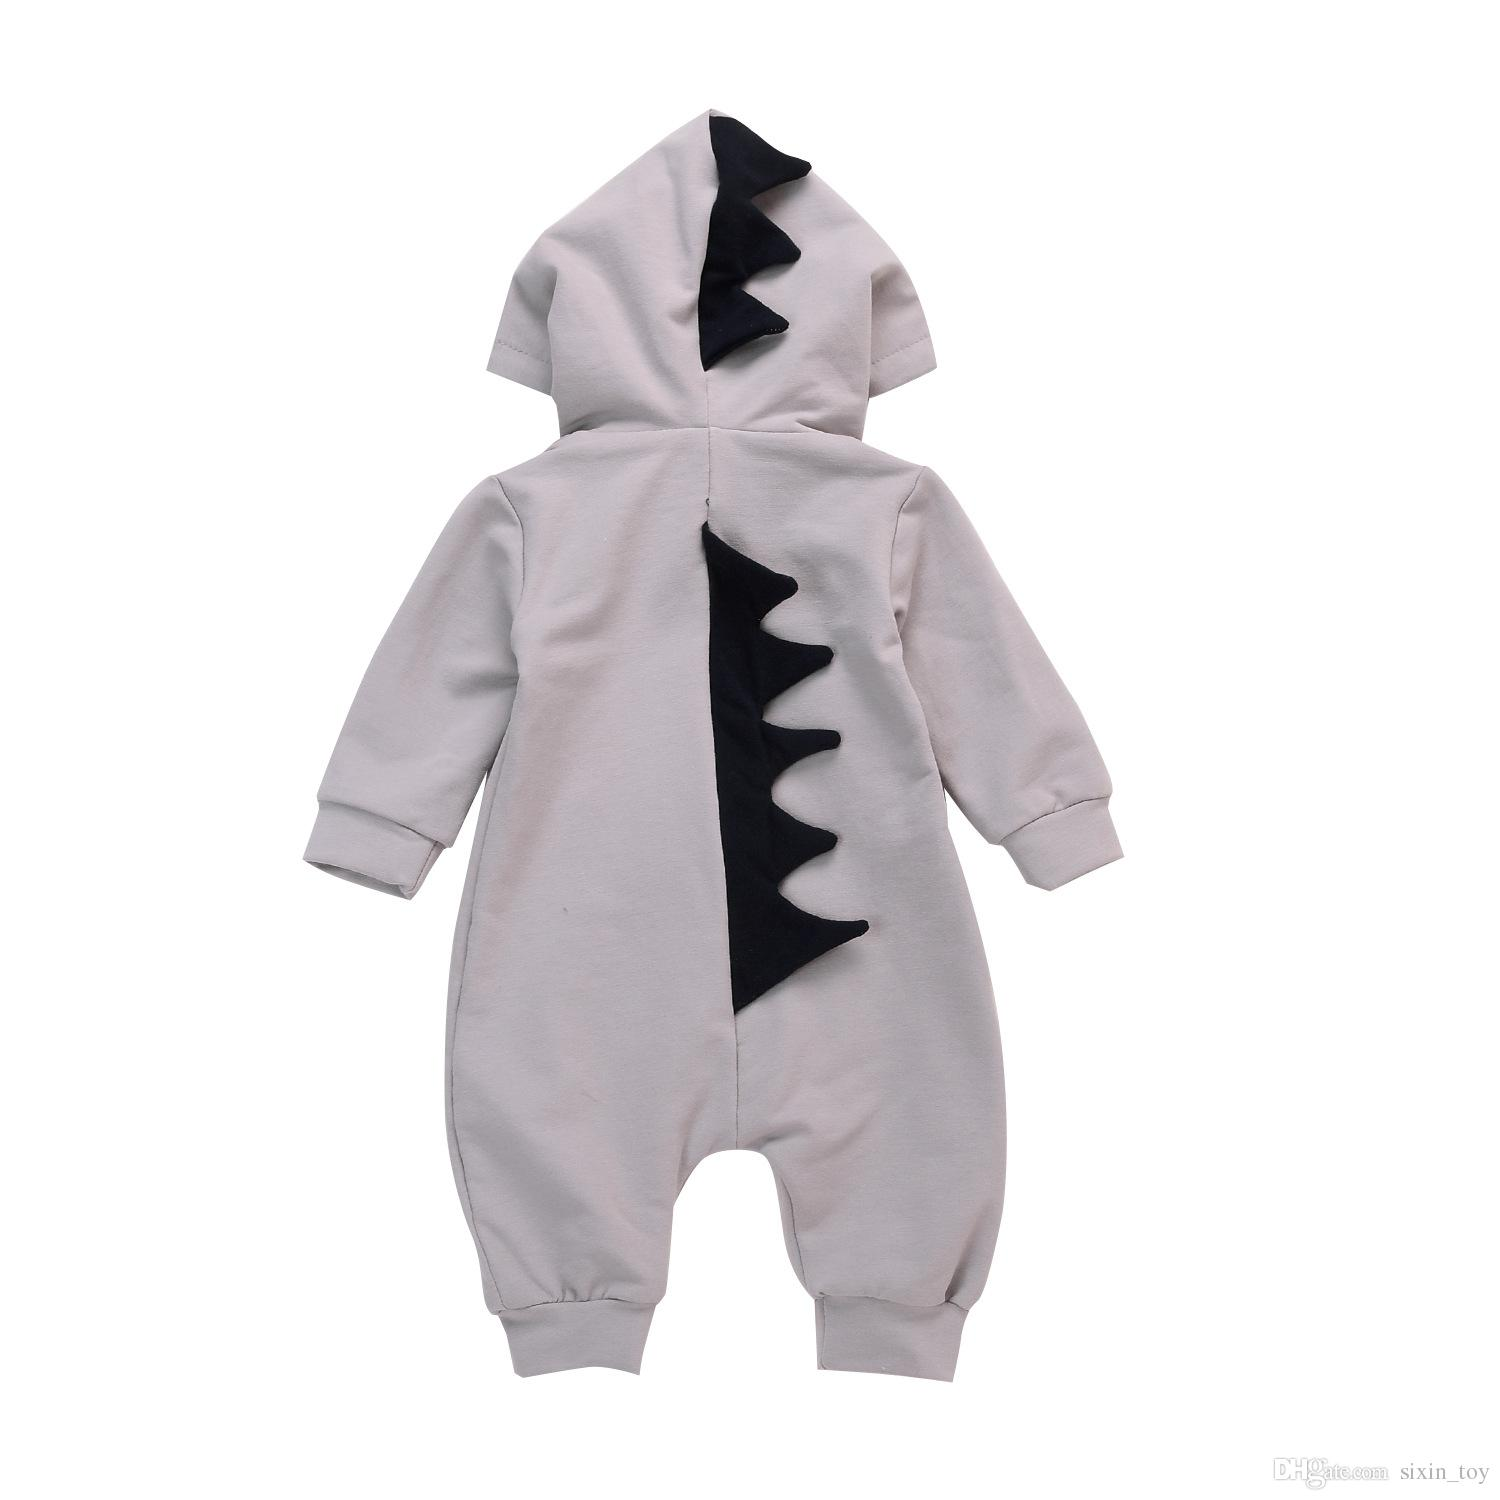 Baby Dinosaur Rompers Ins Baby Outfits Manga larga Boy Girl Outwear con capucha Jumpsuits Mamelucos Bebé Ropa infantil Romper Playsuit